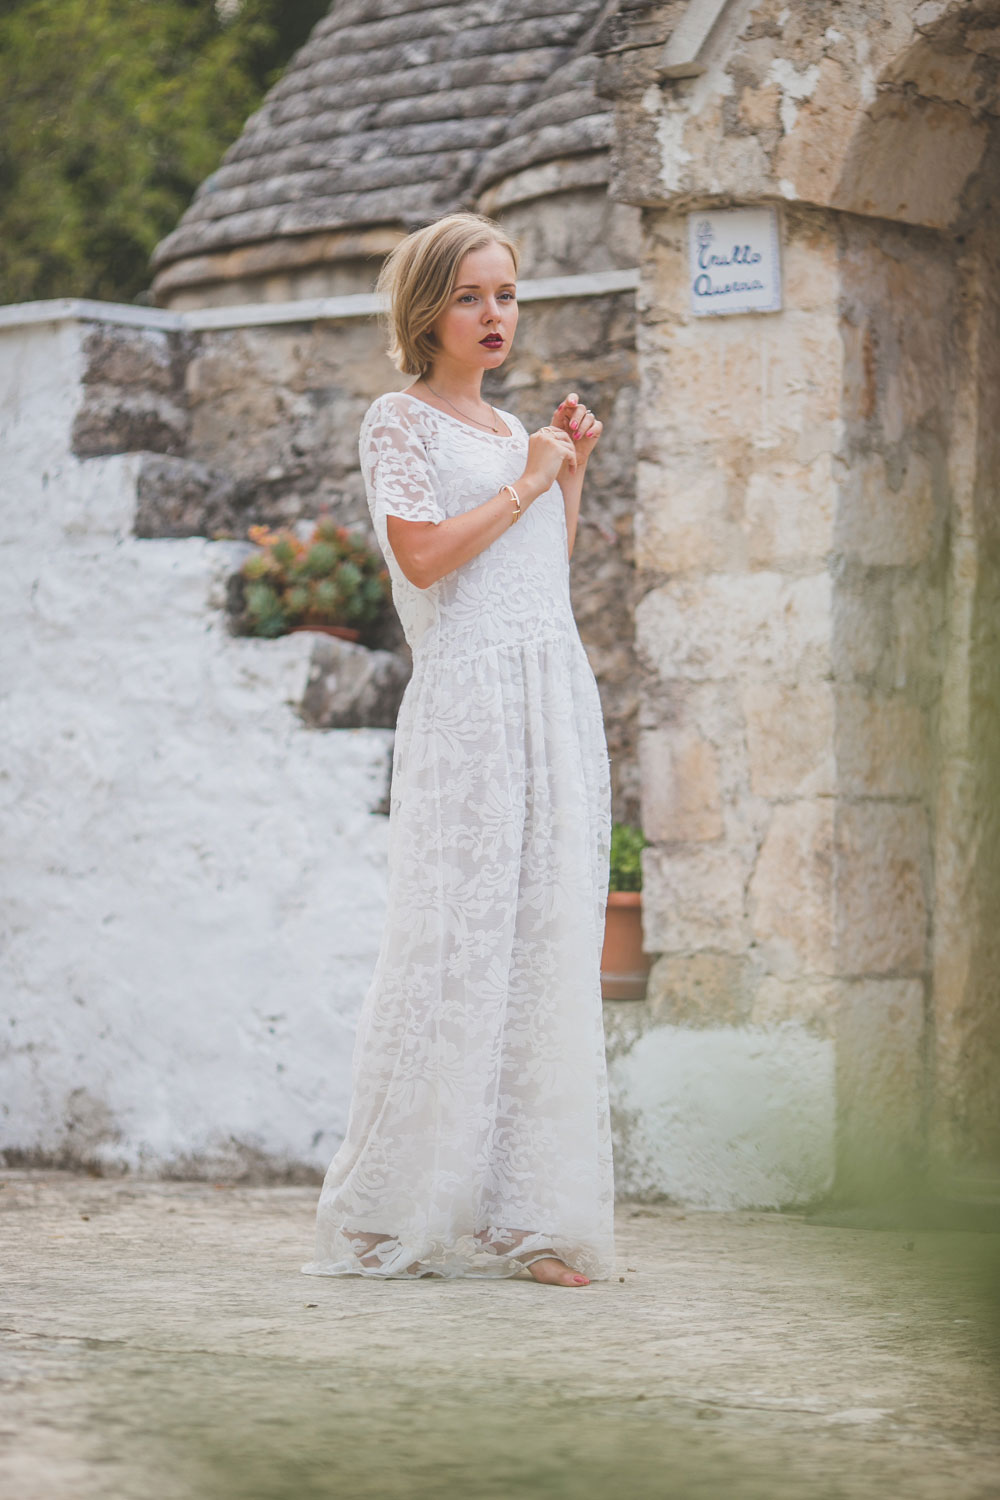 darya-kamalova-thecablook-fashion-lifestyle-blogger-from-thecablook-com-in-agri-trulli-in-puglia-south-italy-wearing-gat-rimon-white-maxi-lace-dress-3960